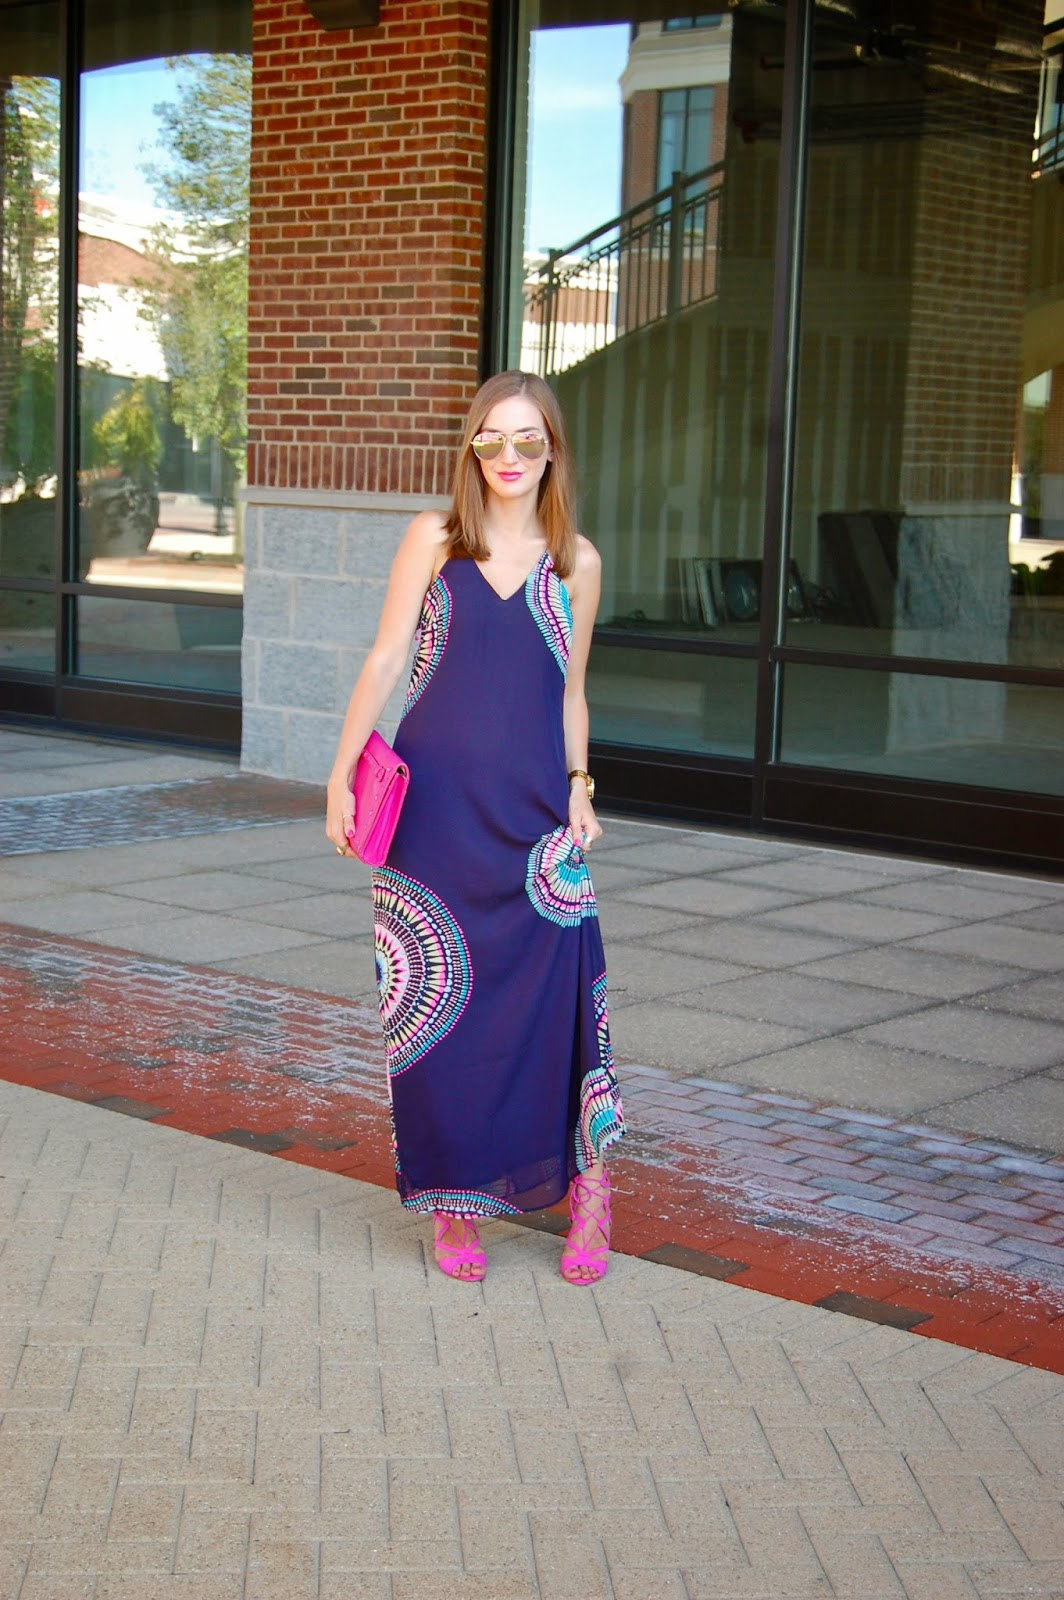 Wearing Old Navy Navy Blue Women's Sunburst Chiffon Maxi Dress, Neiman Marcus Pink Studded Tonal Clutch, Wearing Just Fab Emmey Violet Lace Up Heels, Summer 2014 Dress Looks